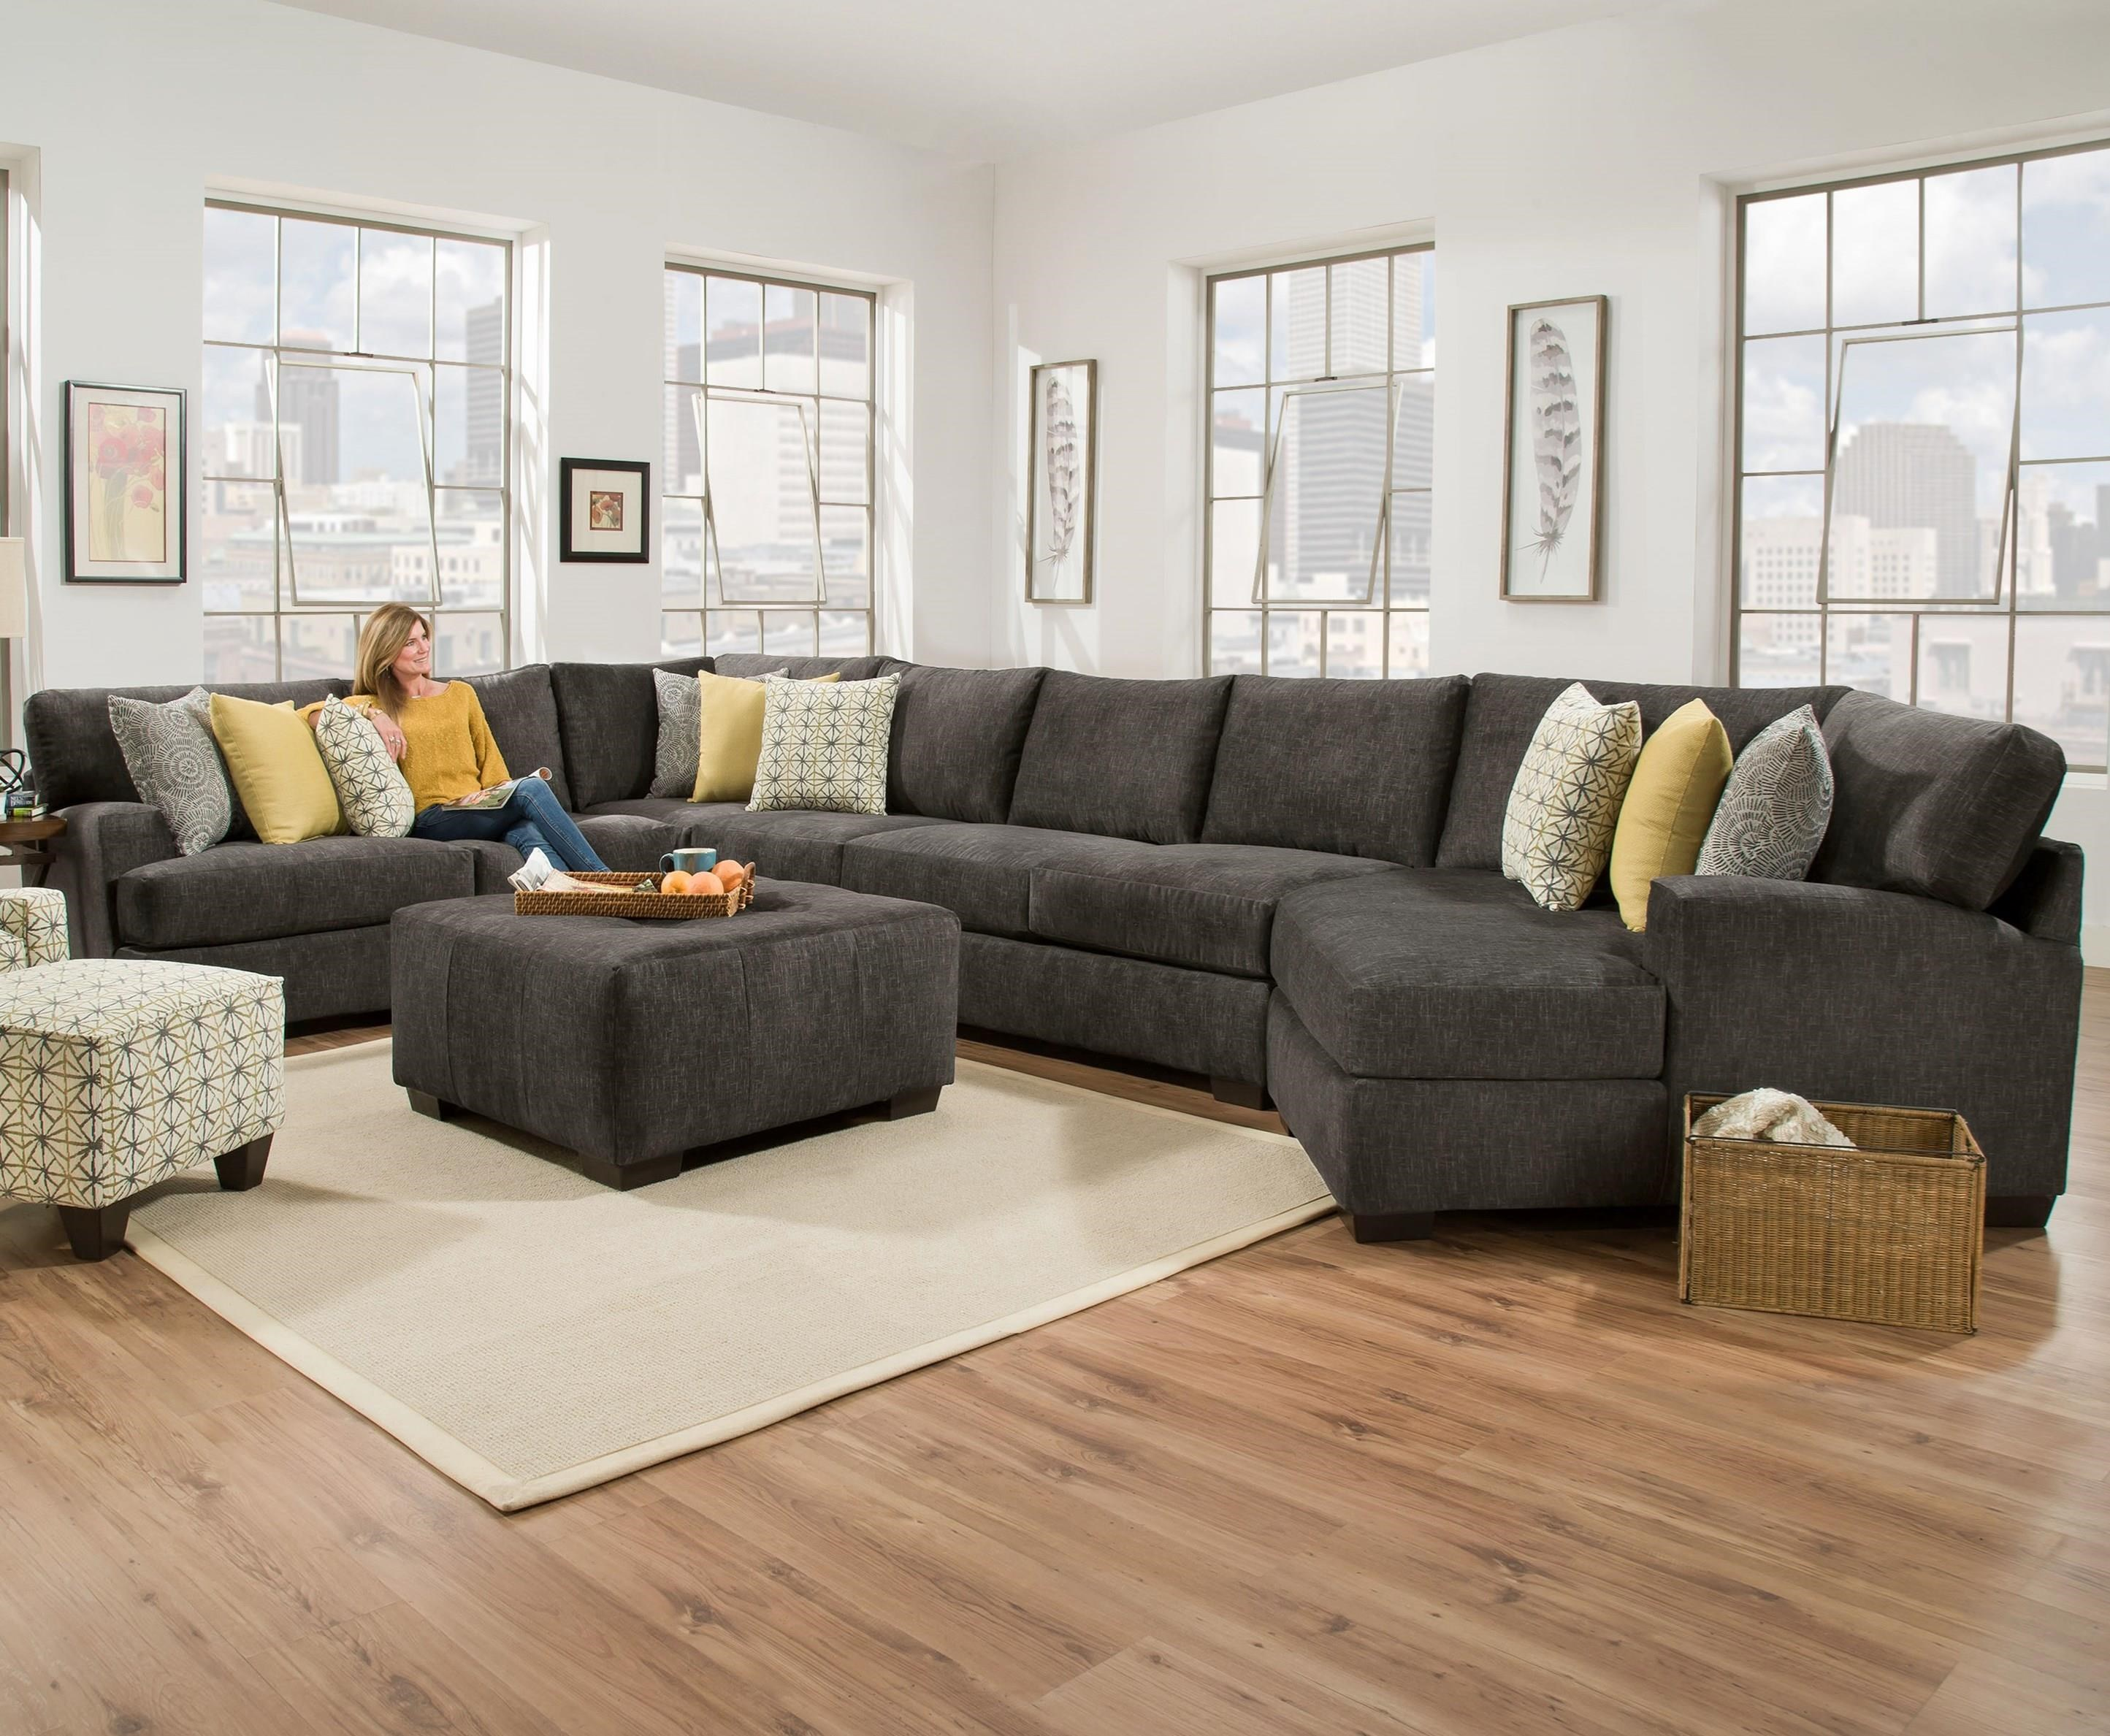 Extra Large Sectional for 6